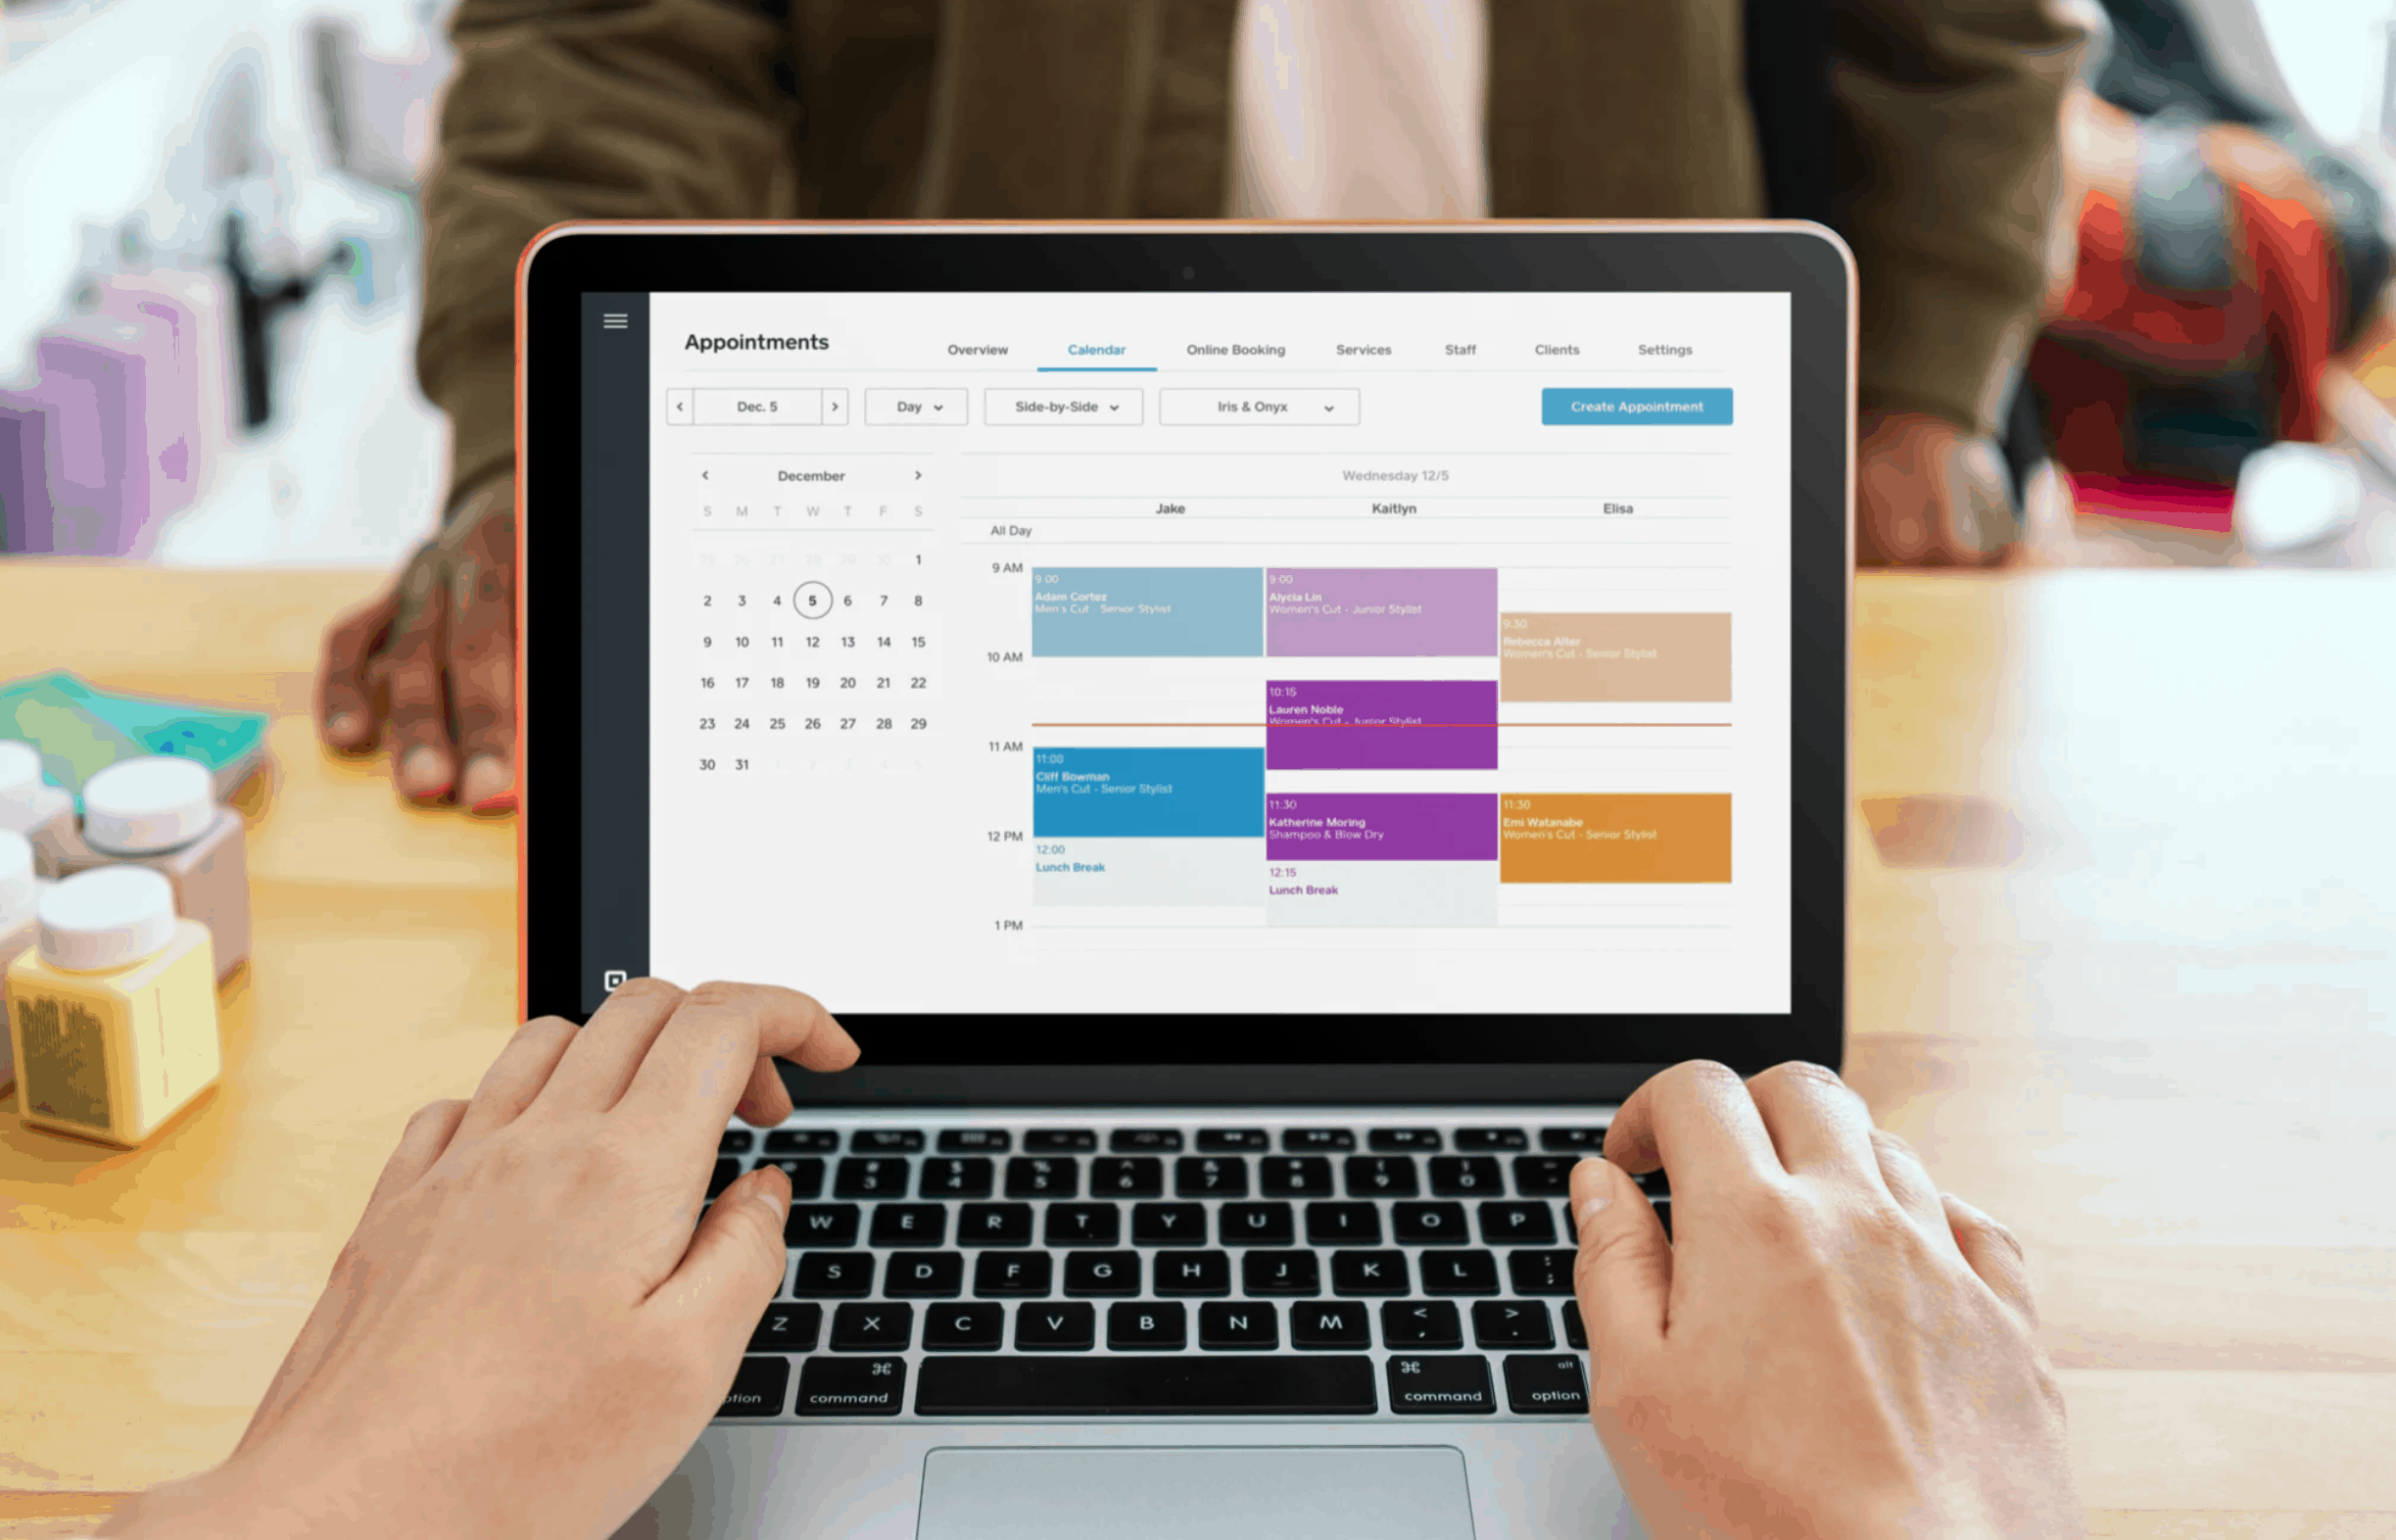 square appointments calendar view on laptop